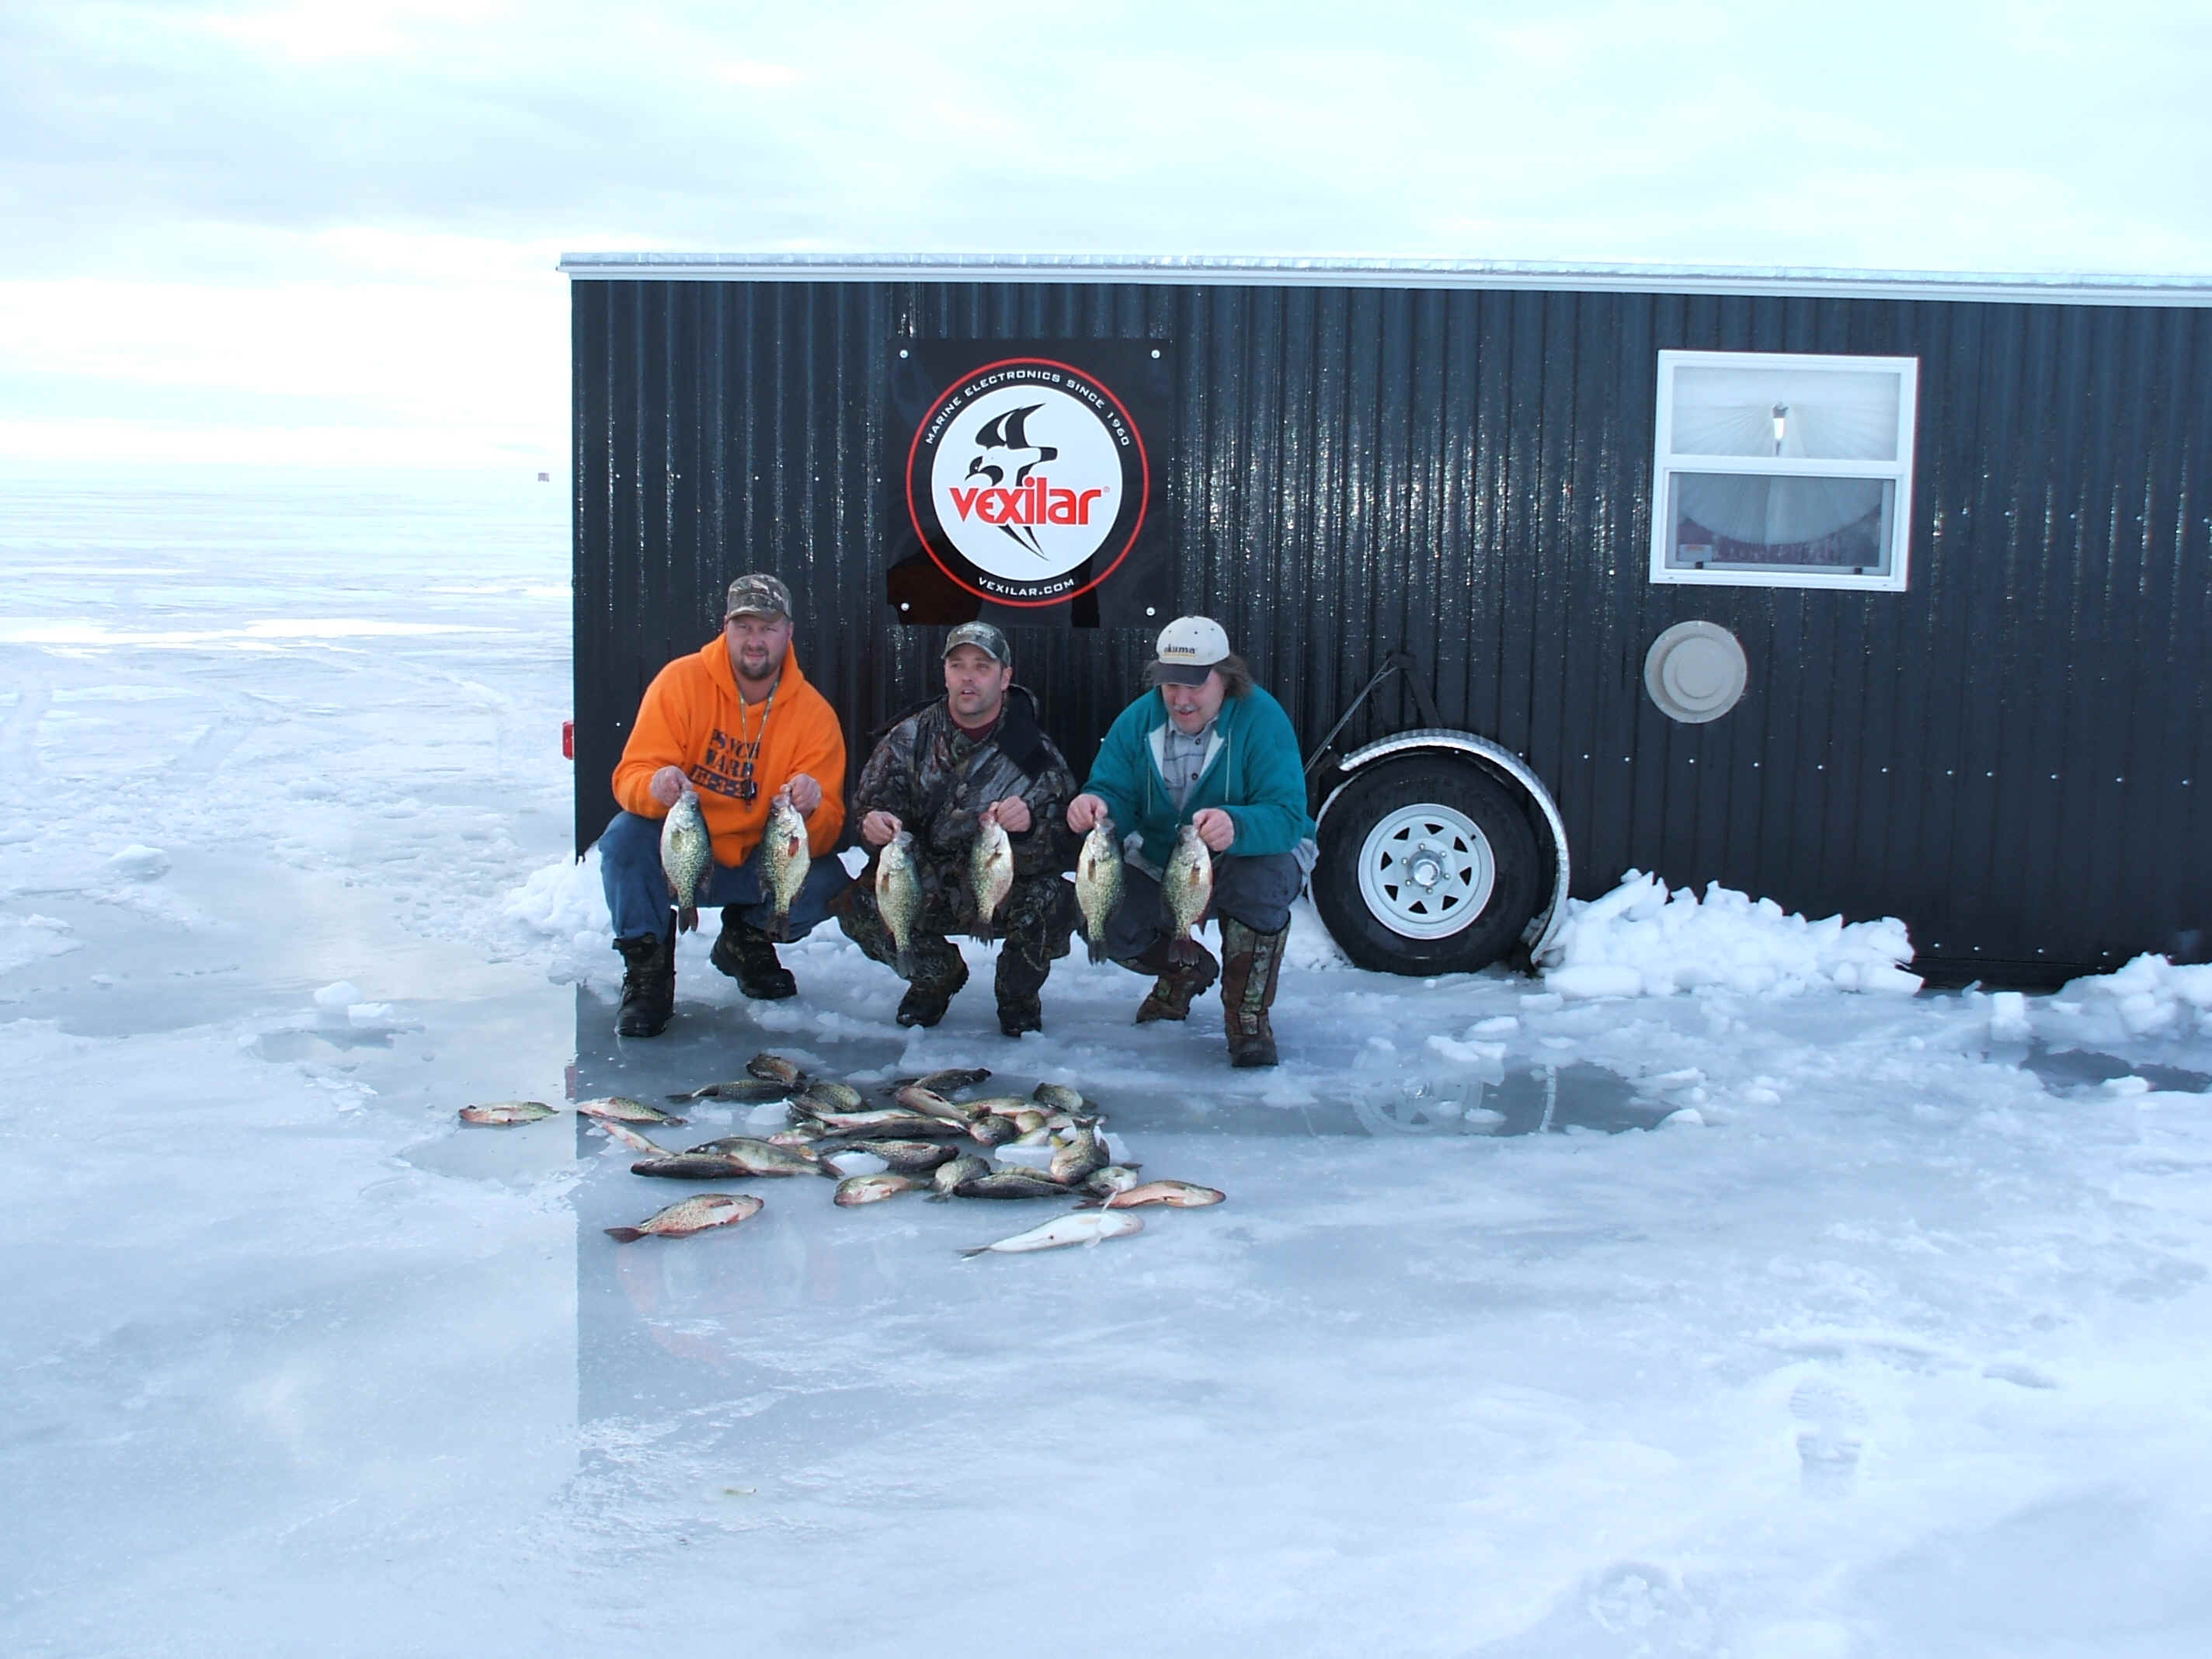 Fish reports raveling outdoors leech lake ice fish house for Leech lake ice fishing